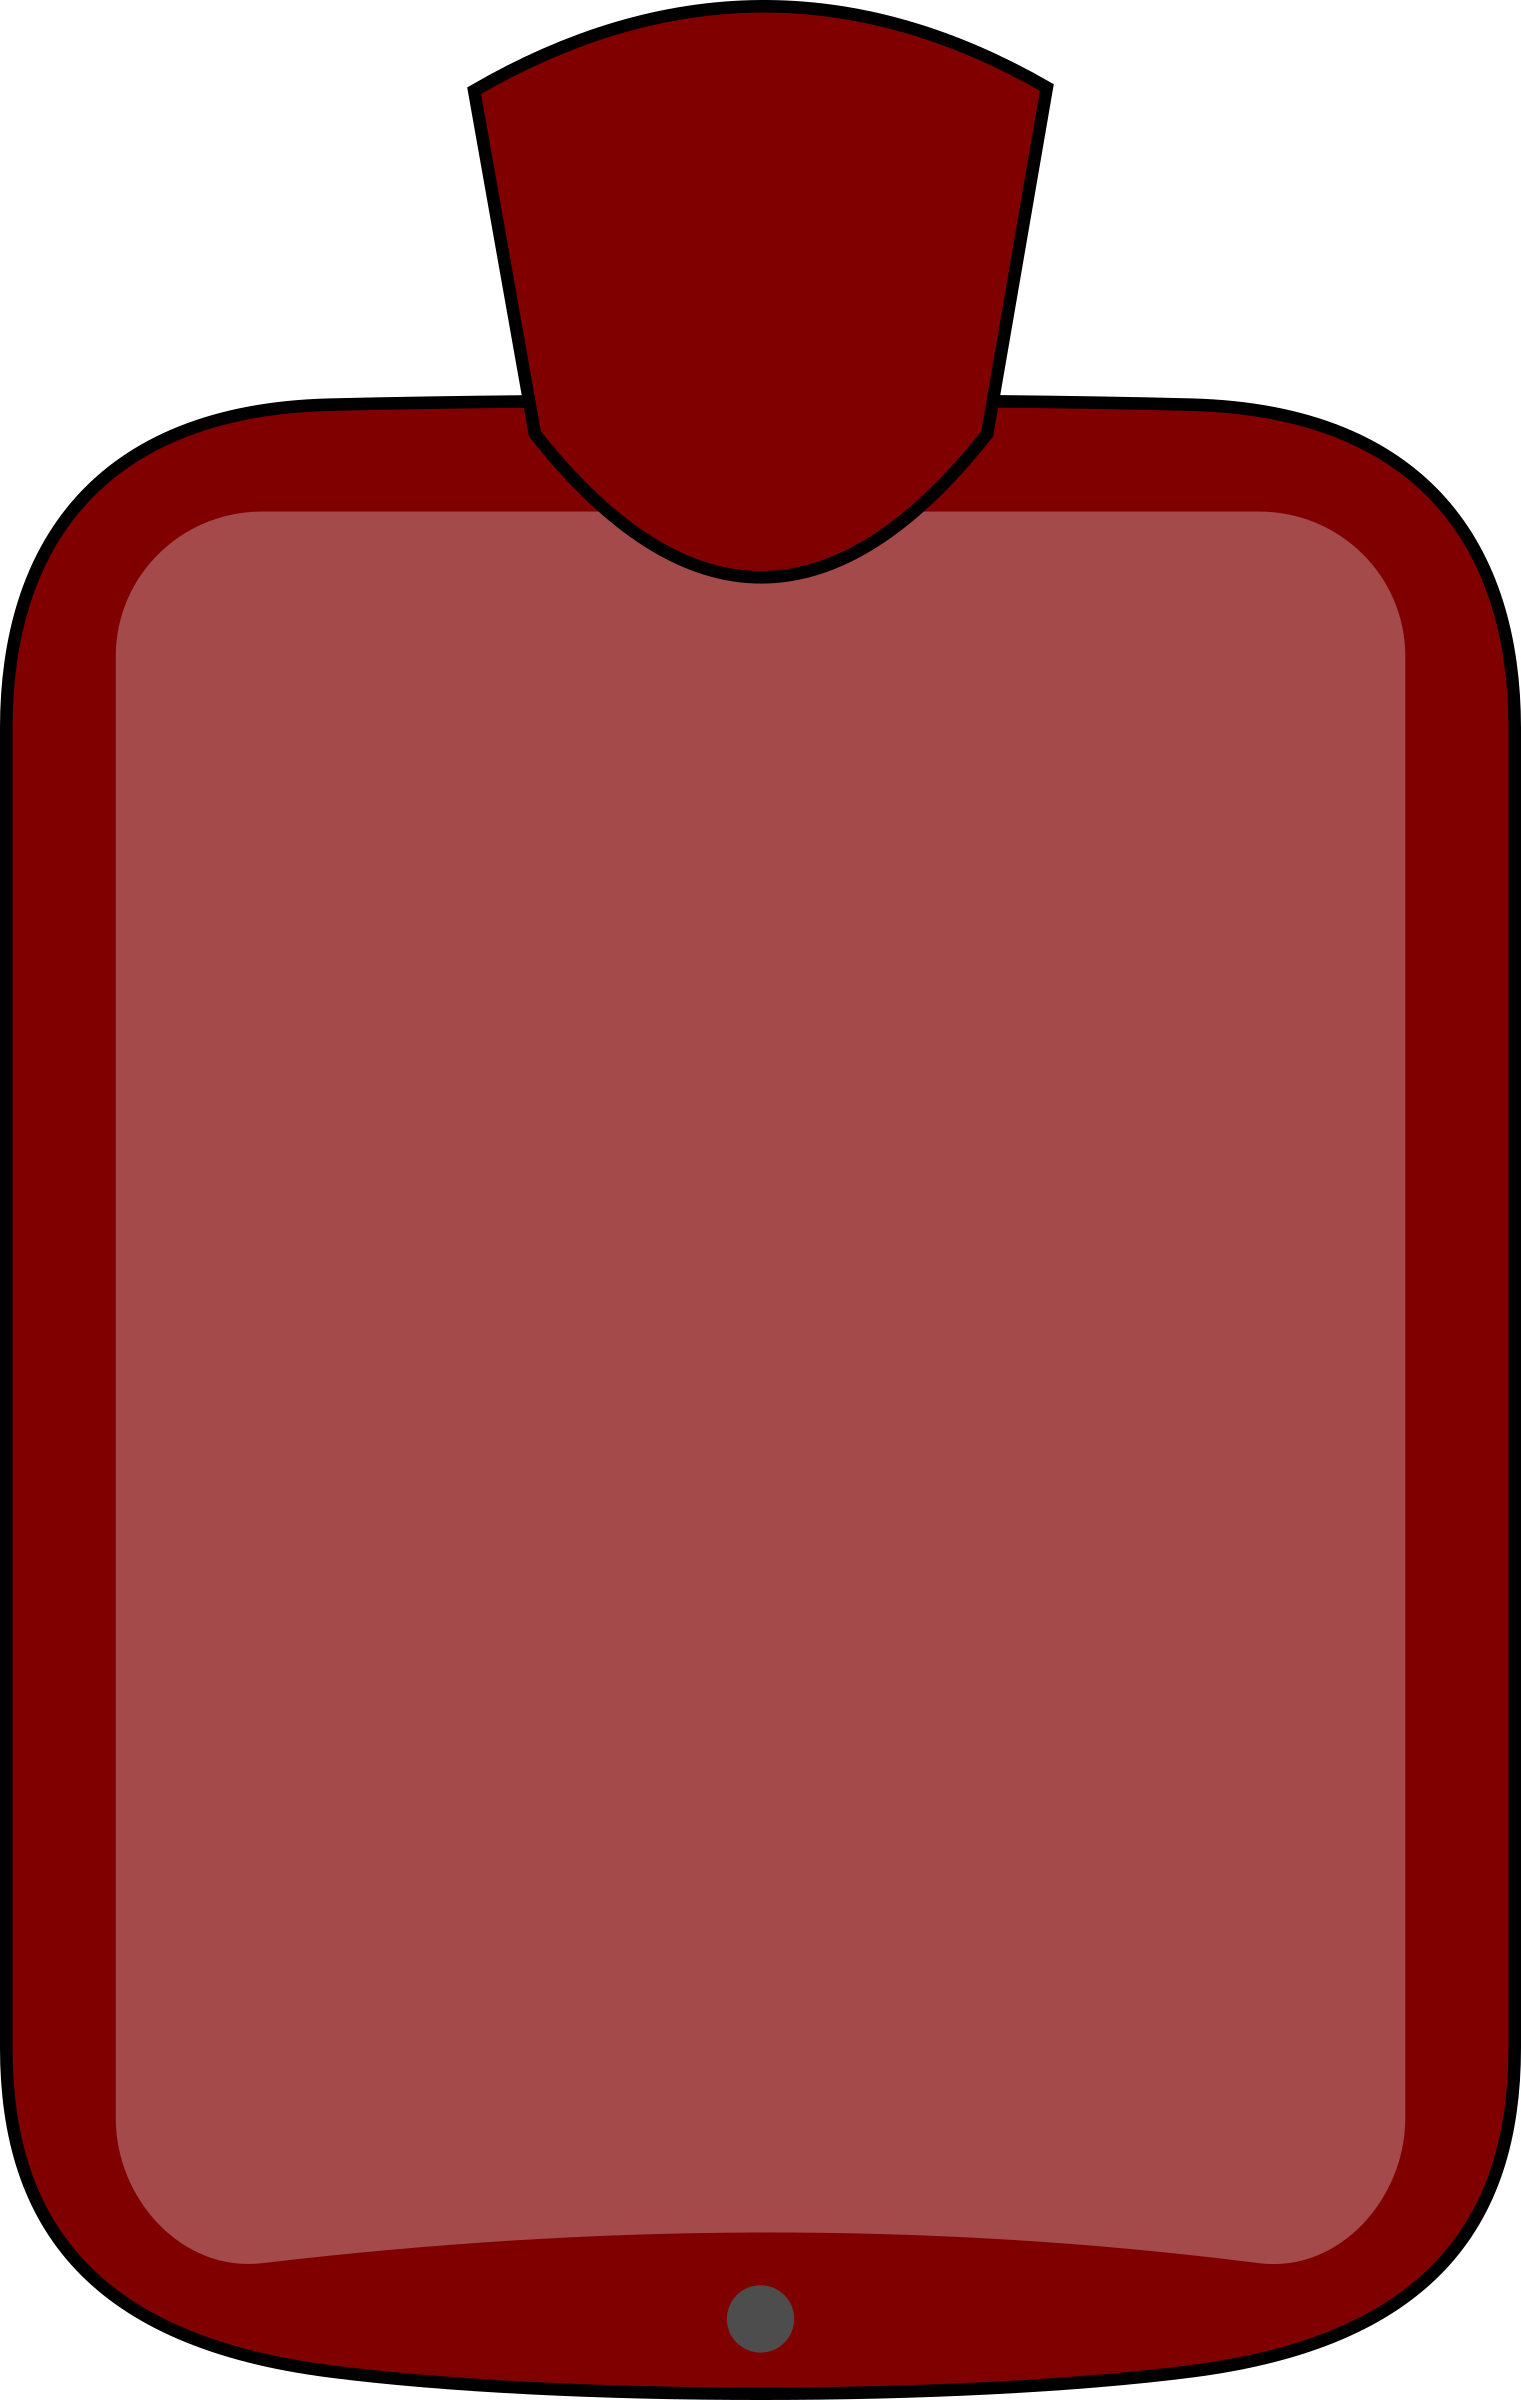 Water clipart red. Hot bottle big image